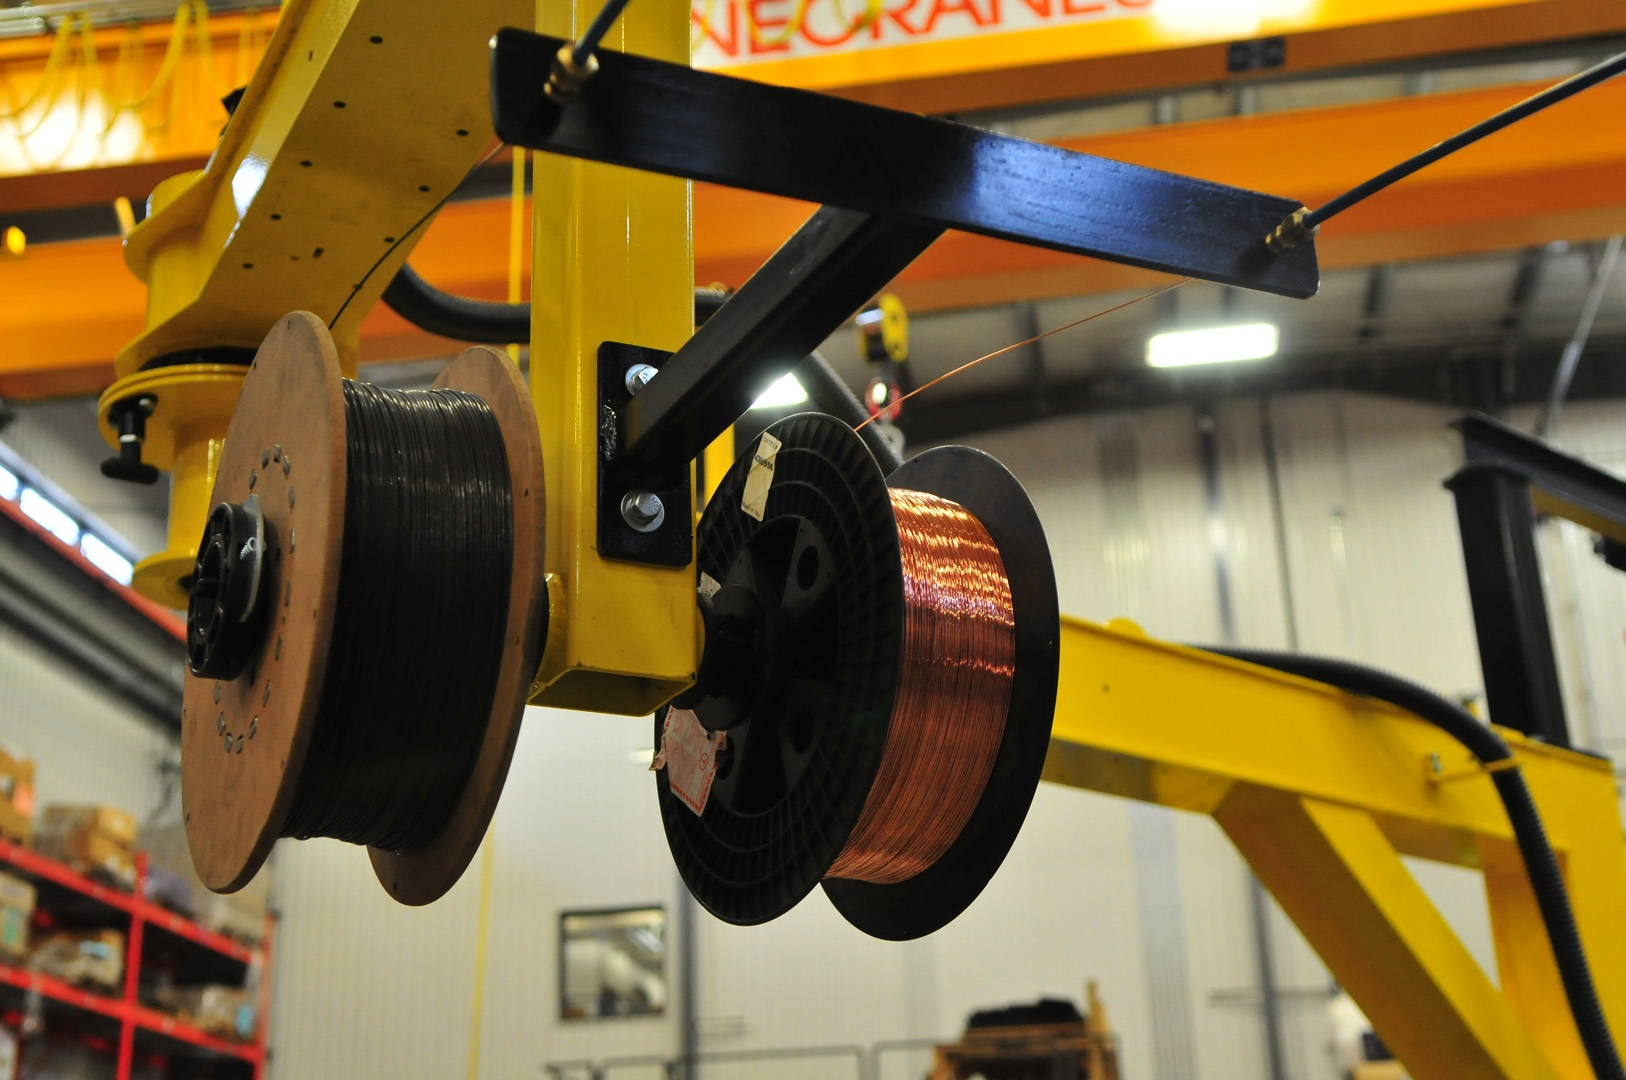 wire feed for MIG welding jib